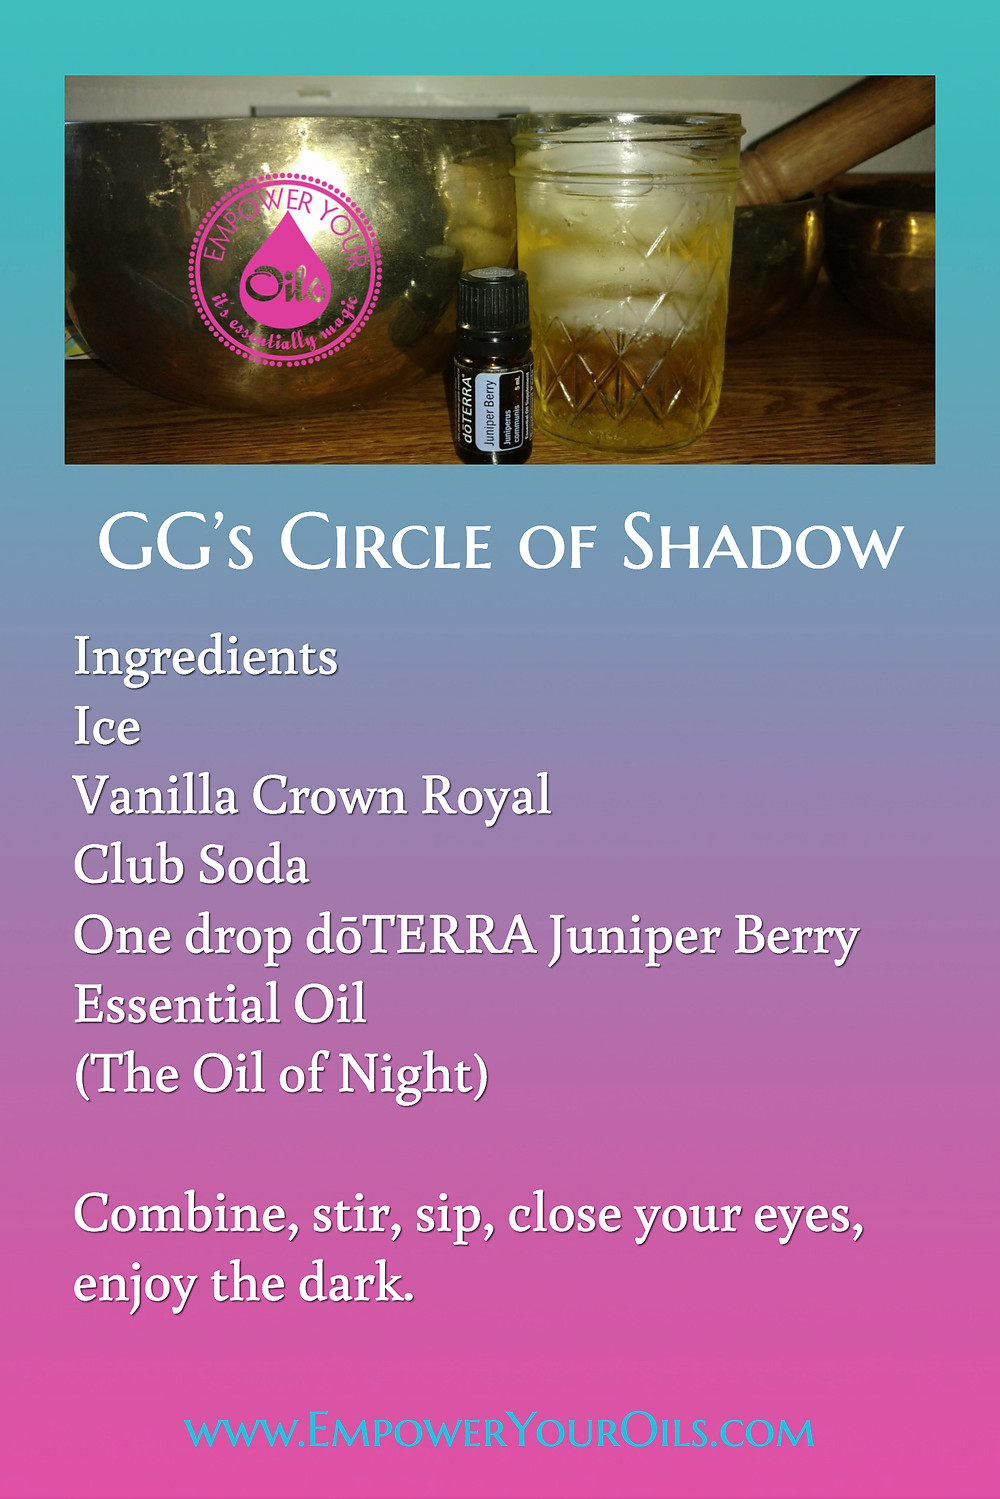 GG's Circle of Shadow Cocktail